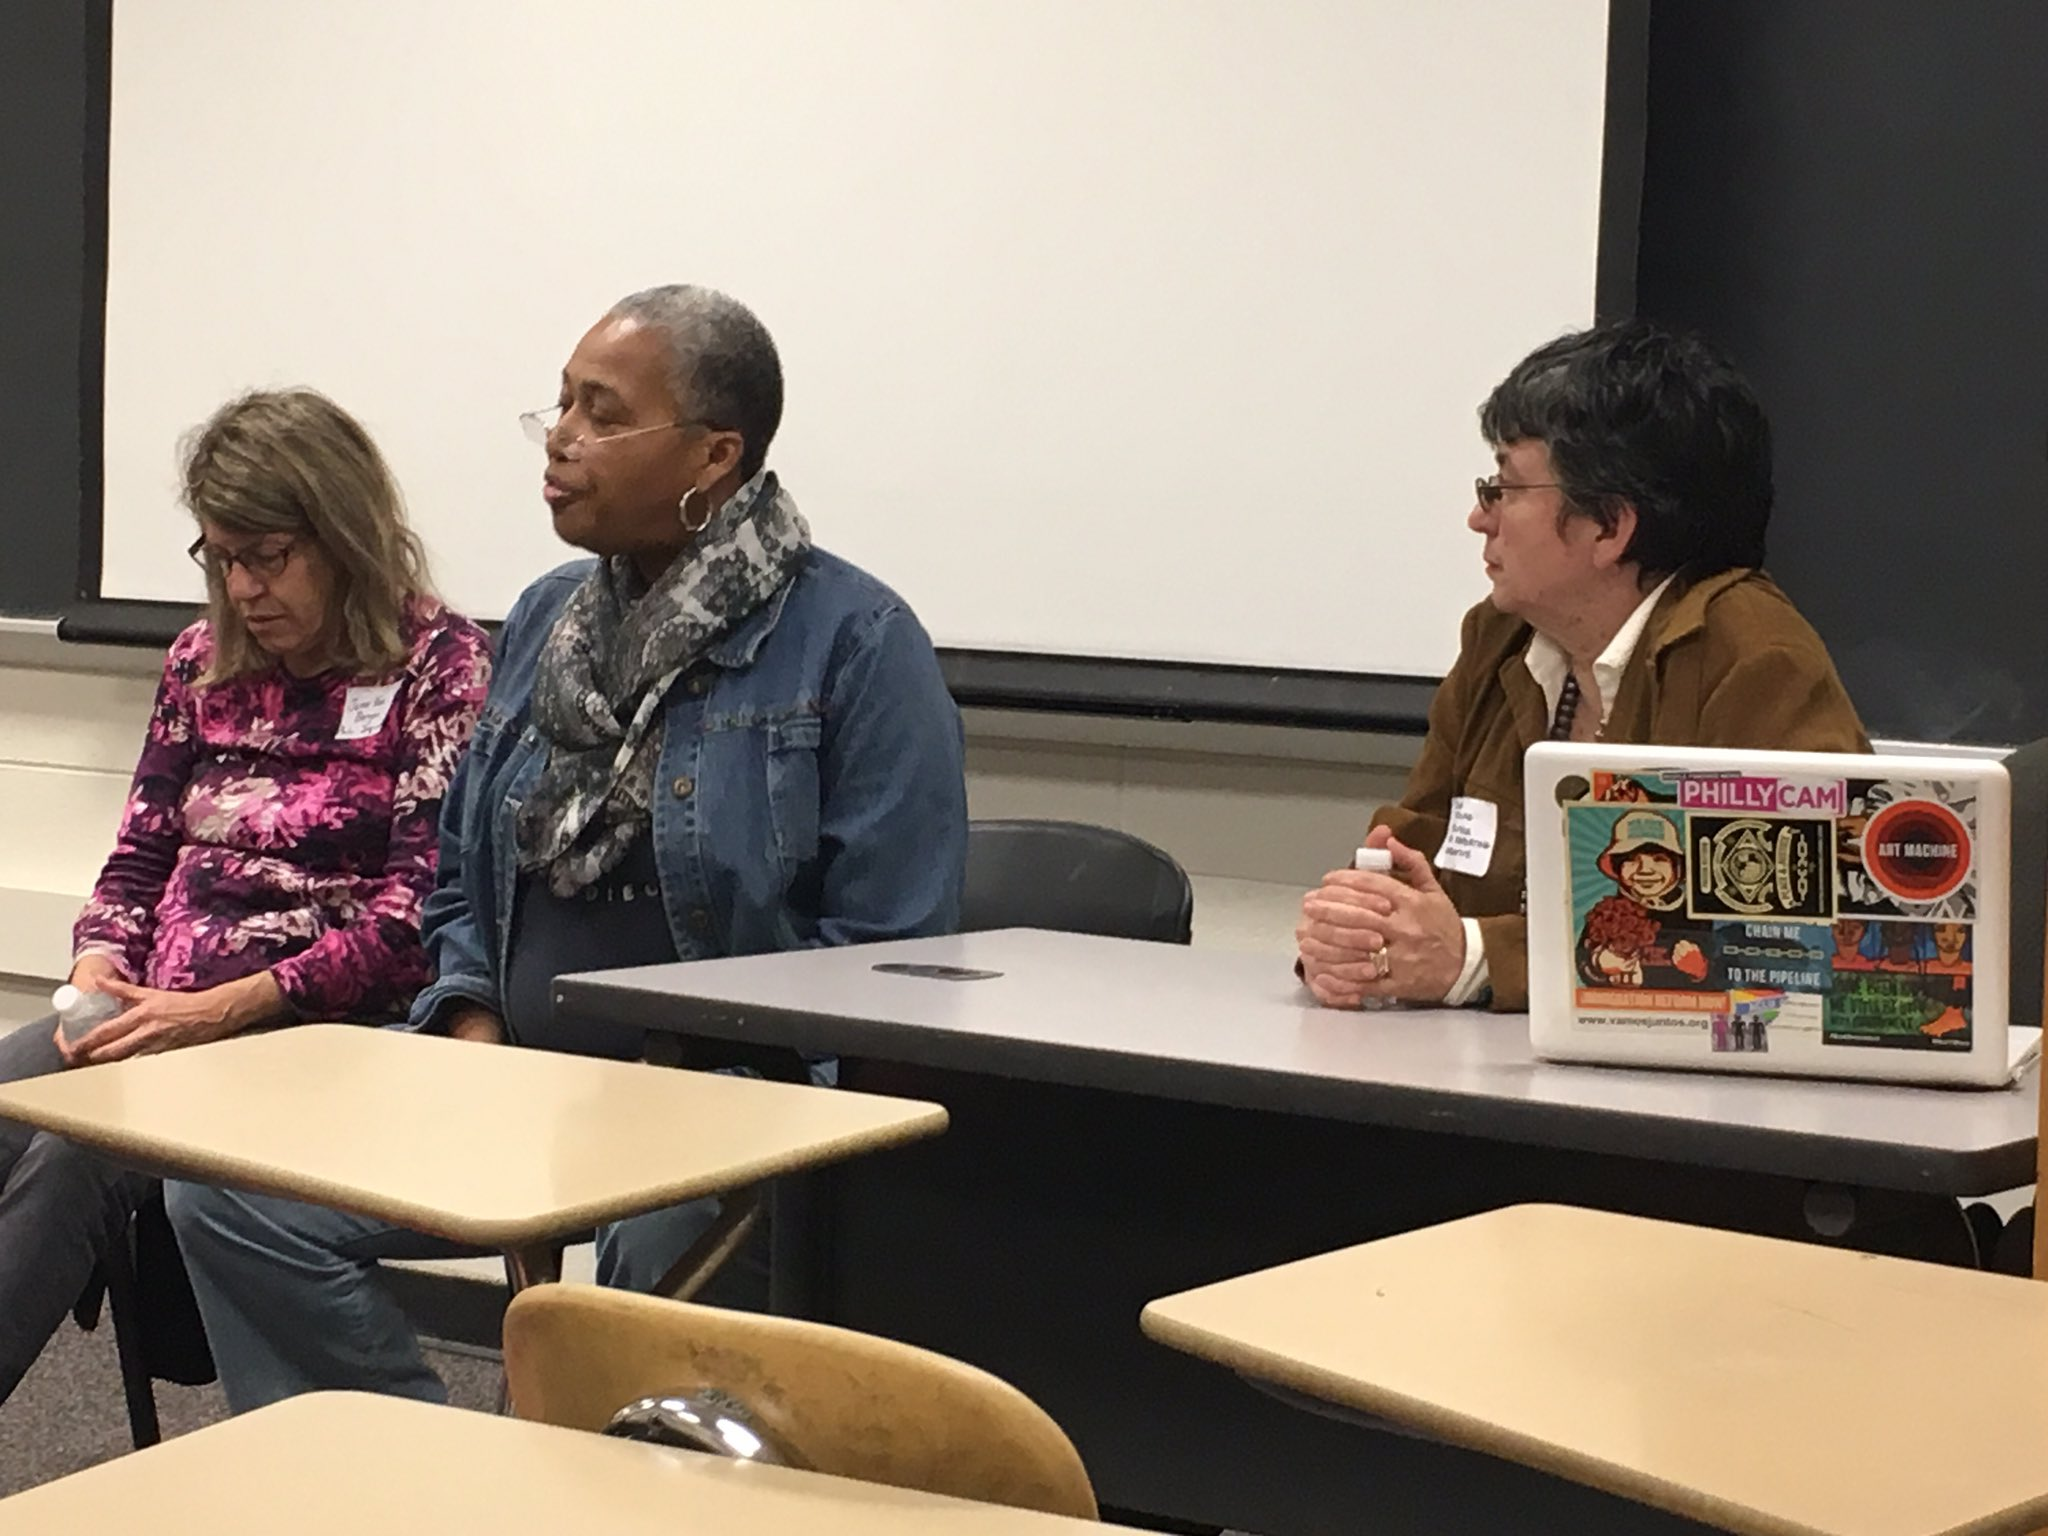 Excellent conversation on #reentry with @bobbibooker @followthelede @JaneVonBergen at #bcni16. https://t.co/T5xCbeWsHx